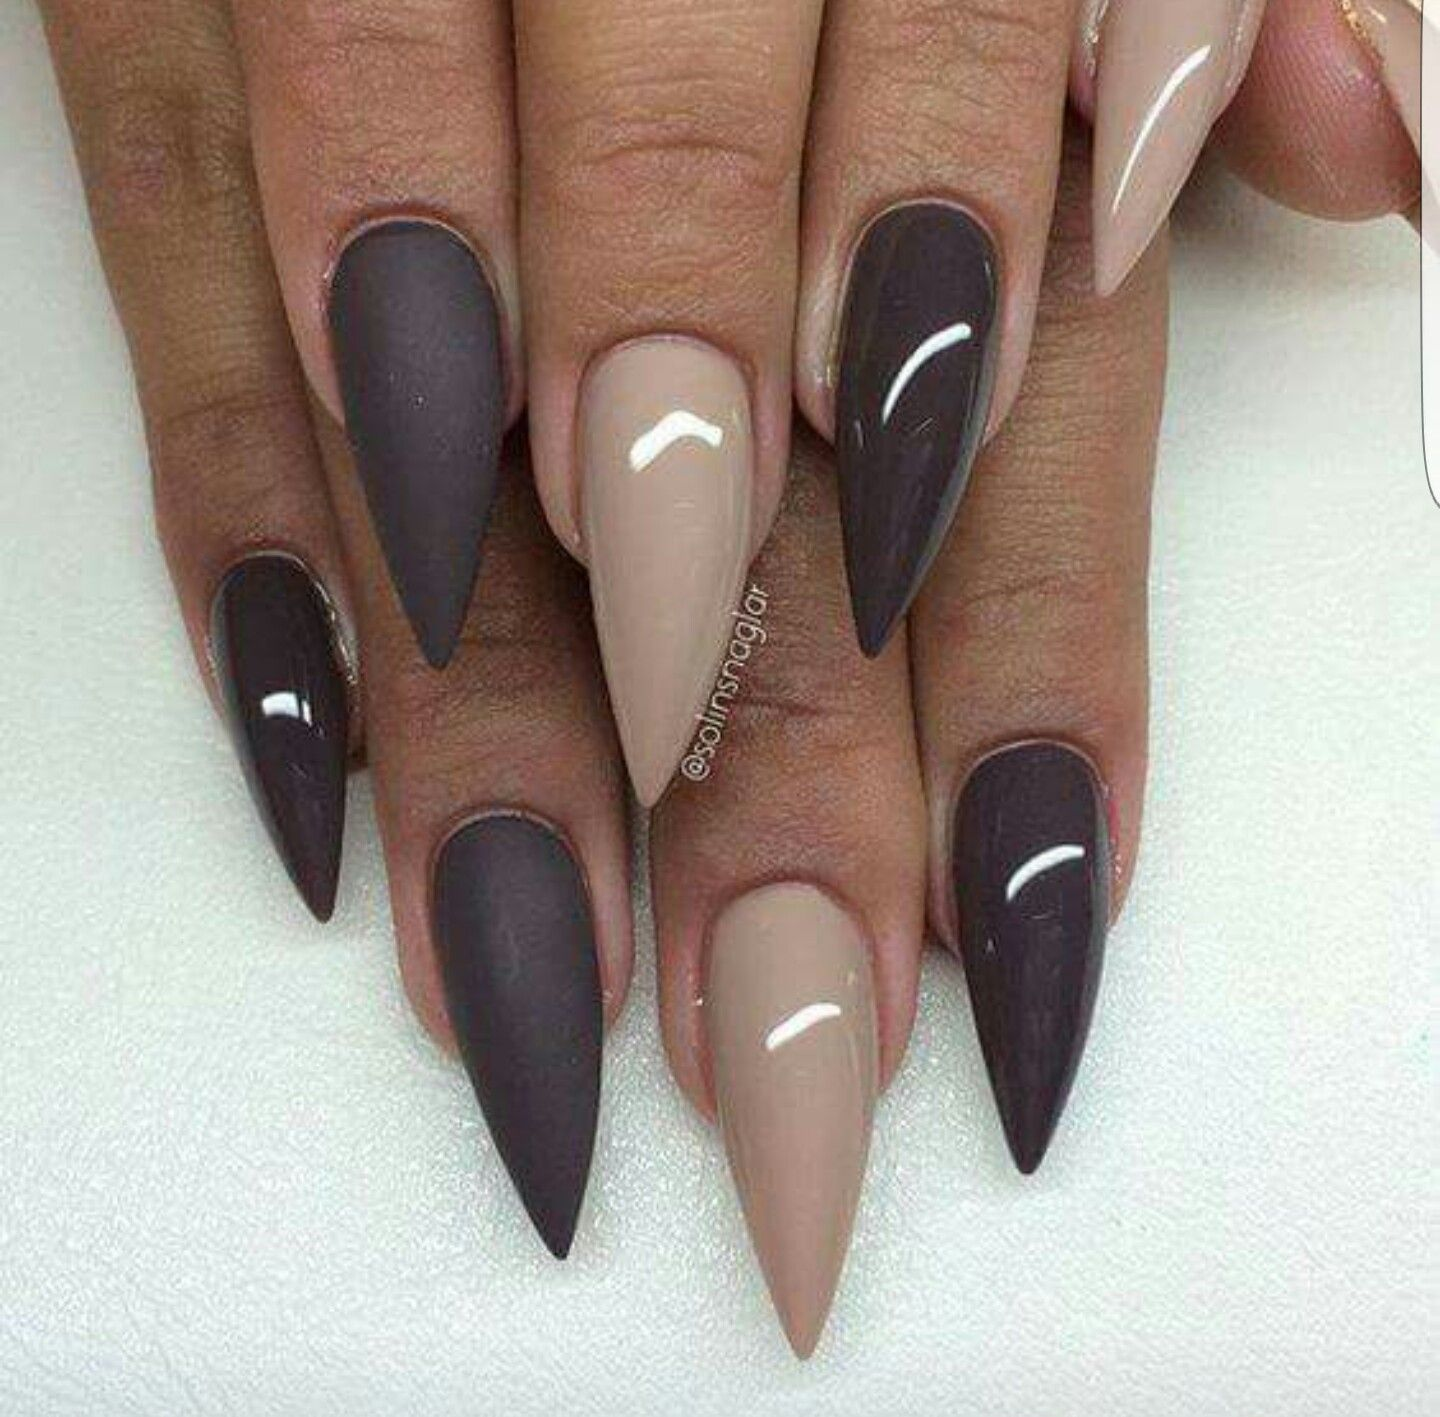 A great, simple design x | Nails | Pinterest